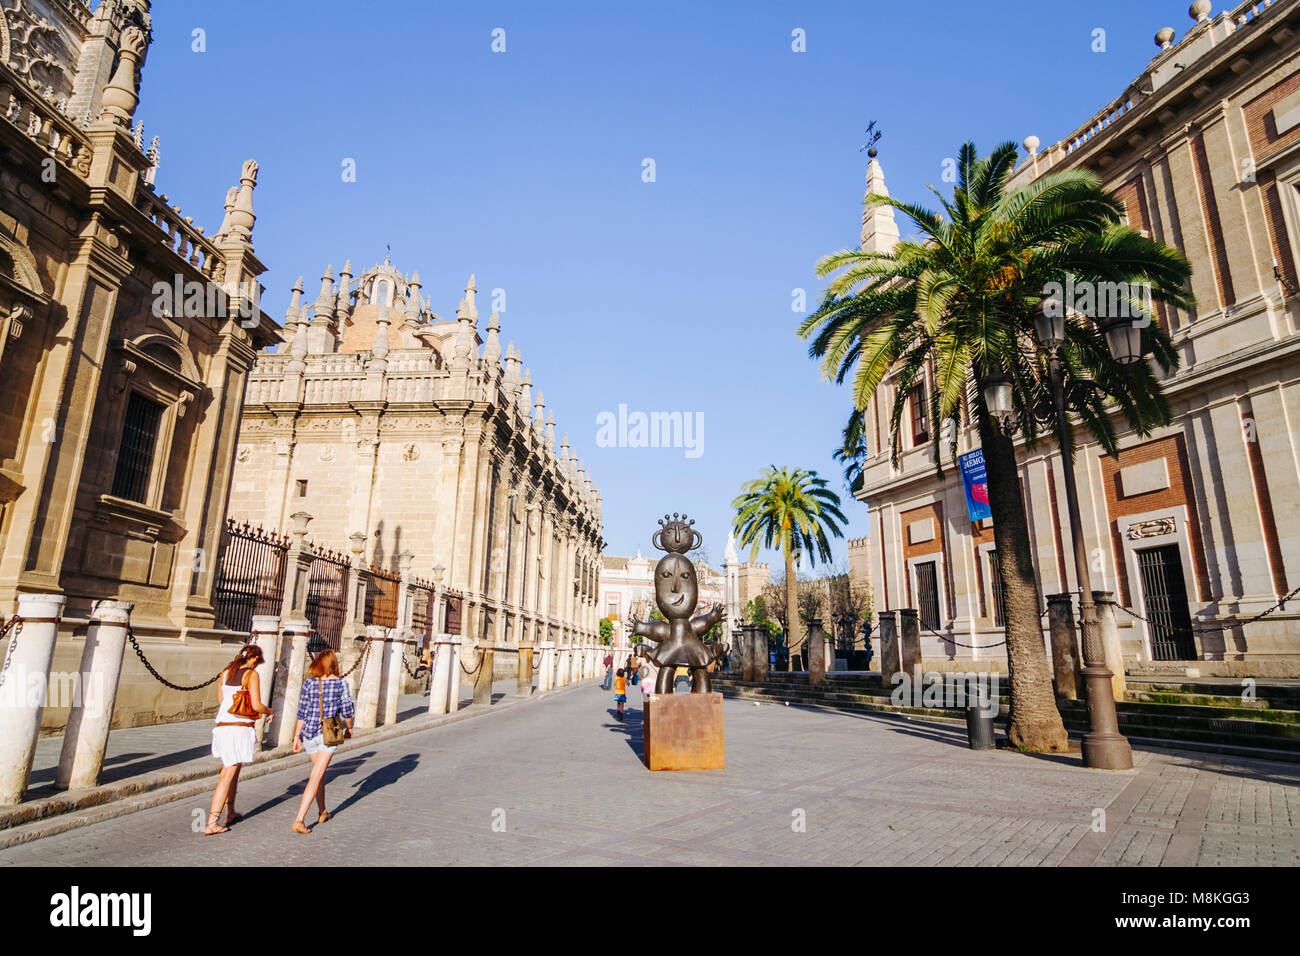 Seville, Andalusia, Spain : Tourists walk past the Unesco listed Cathedral of Seville, the largest Gothic structure - Stock Image